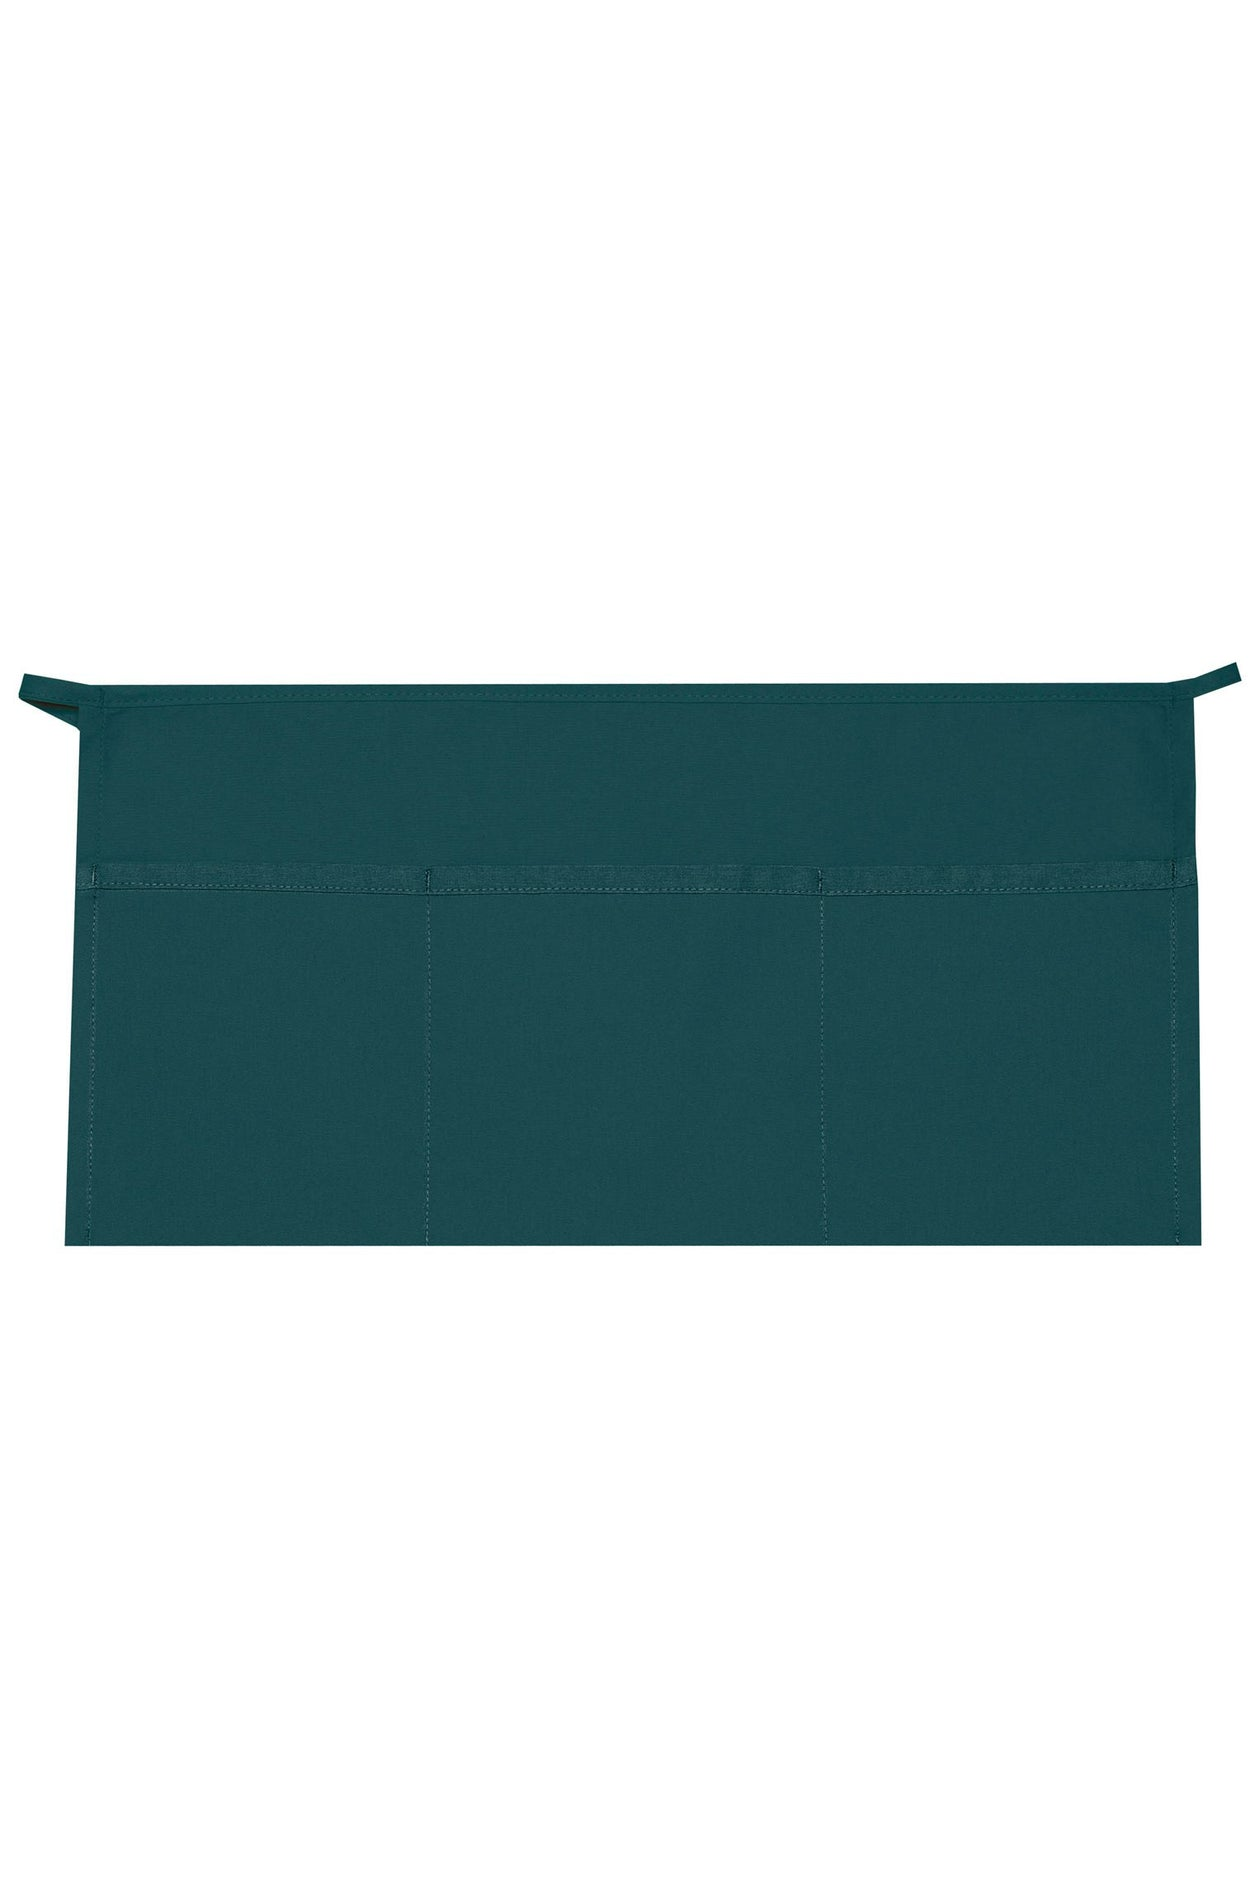 Teal XL Waist Apron (3 Pockets)